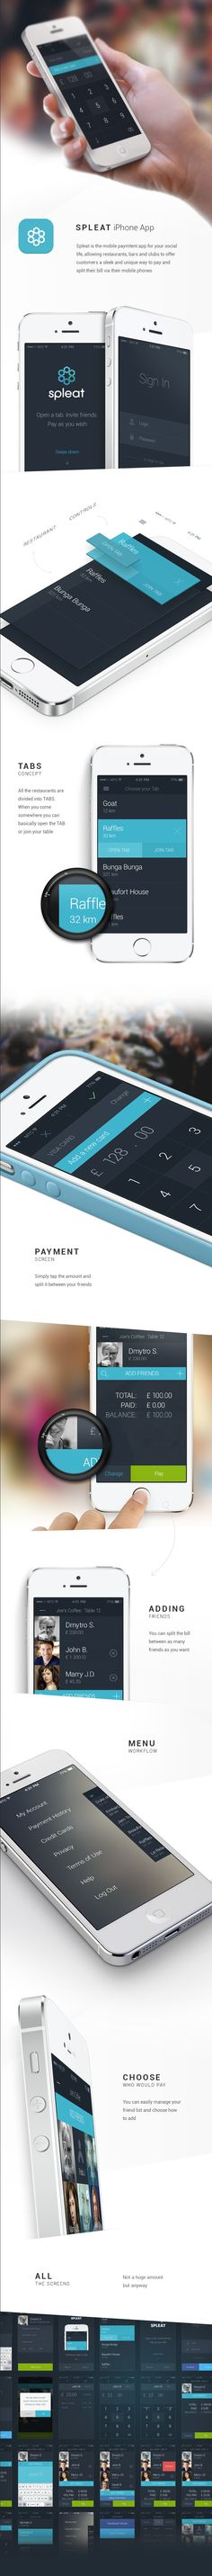 Spleat is the mobile paymtent app for your social life, allowing restaurants, bars and clubs to offer customers a sleek and unique way to pay and split their bill via their mobile phones - #app #iphone #behance